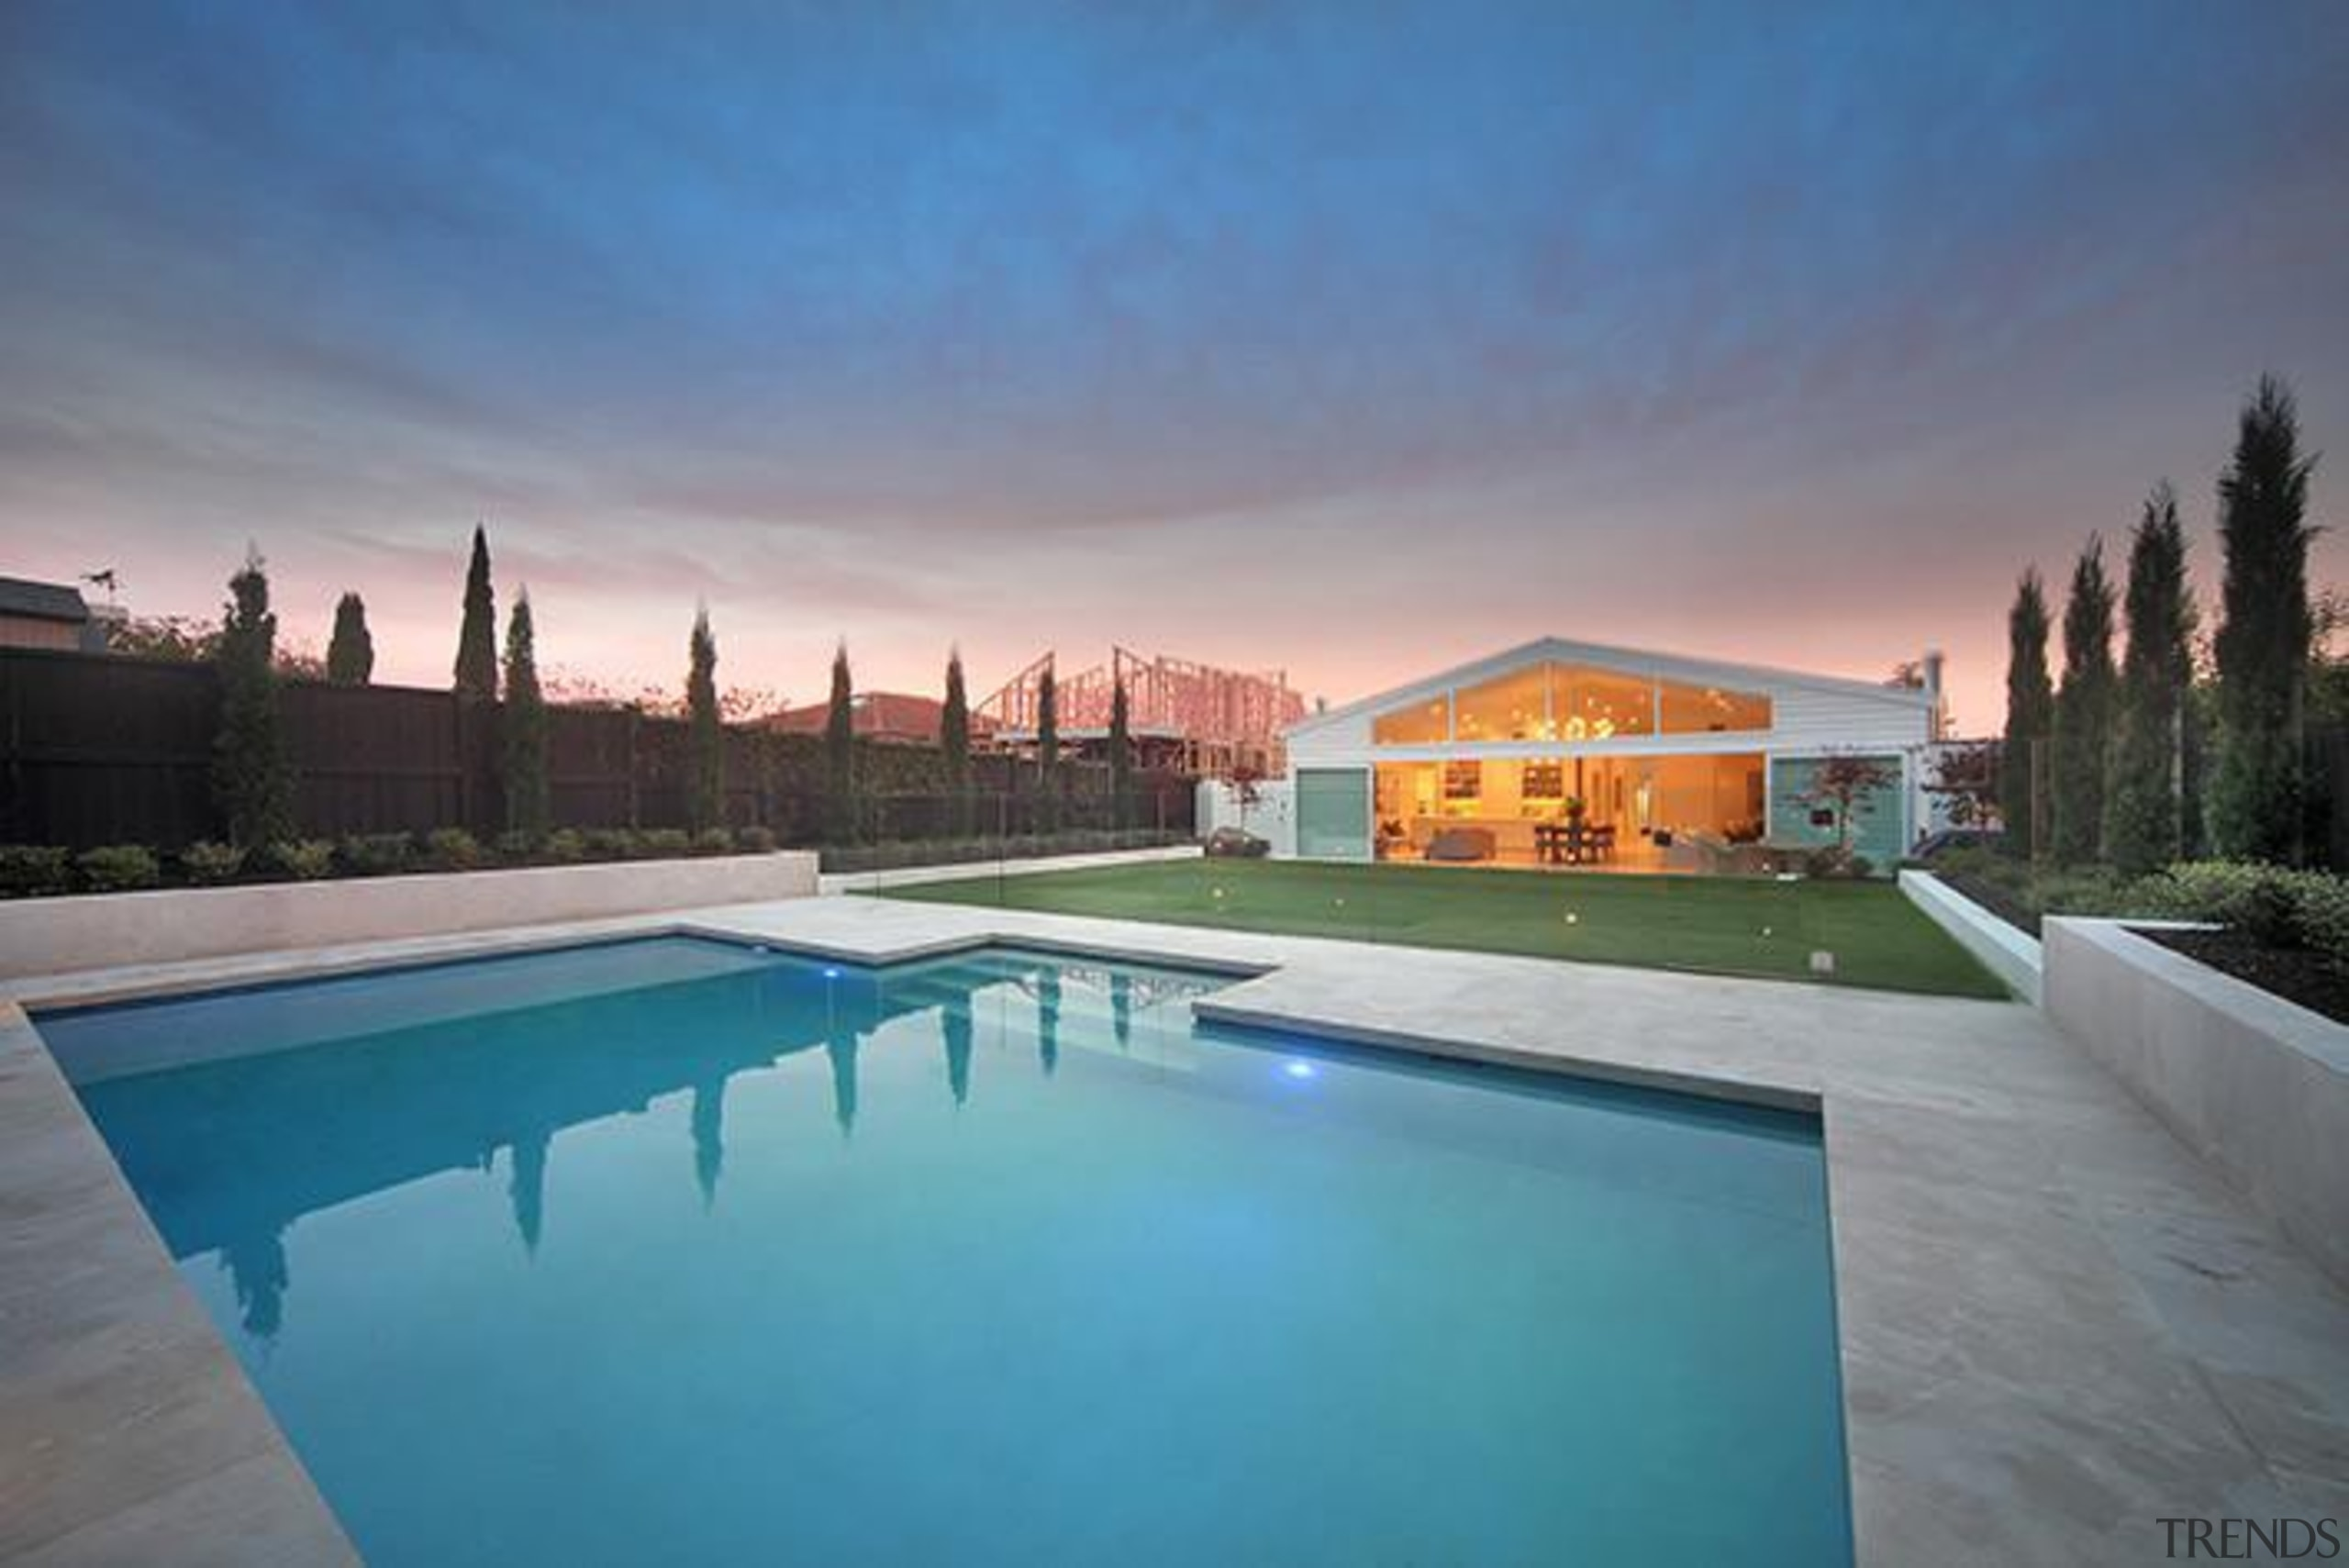 Kenny Rd. 1.5 - Kenny Rd. 1.5 - architecture, estate, home, house, leisure, lighting, property, real estate, reflection, residential area, resort, sky, swimming pool, villa, water, gray, teal